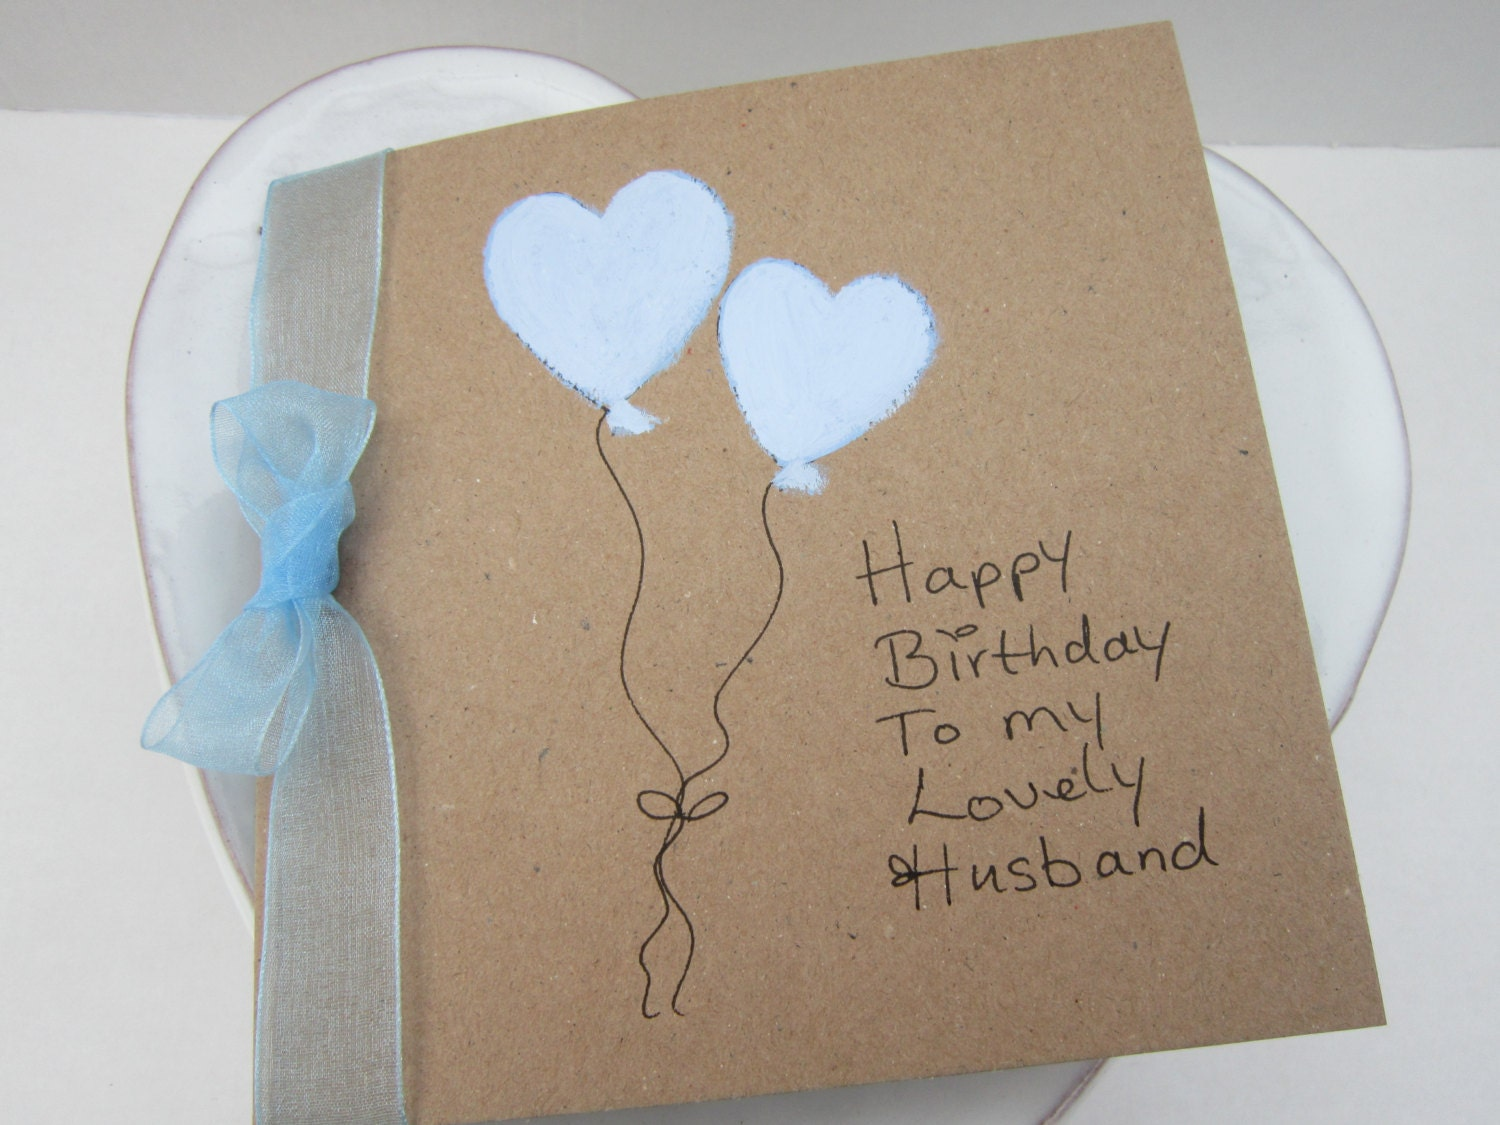 Birthday Cards For Husband Photos ~ Happy birthday dear husband greeting cards happy birthday to the